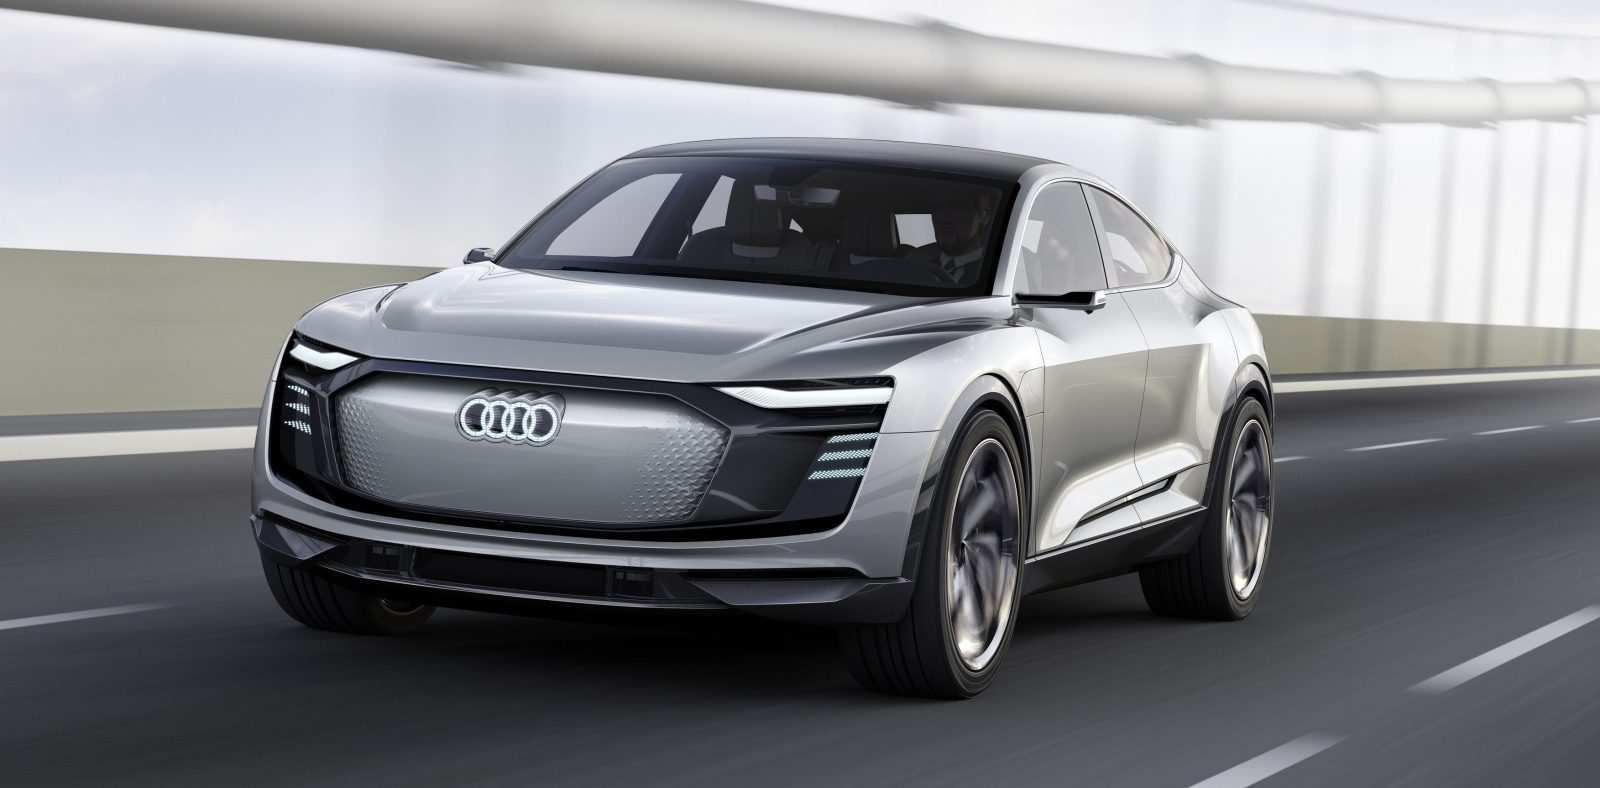 80 All New Audi New Electric Car 2020 Style for Audi New Electric Car 2020